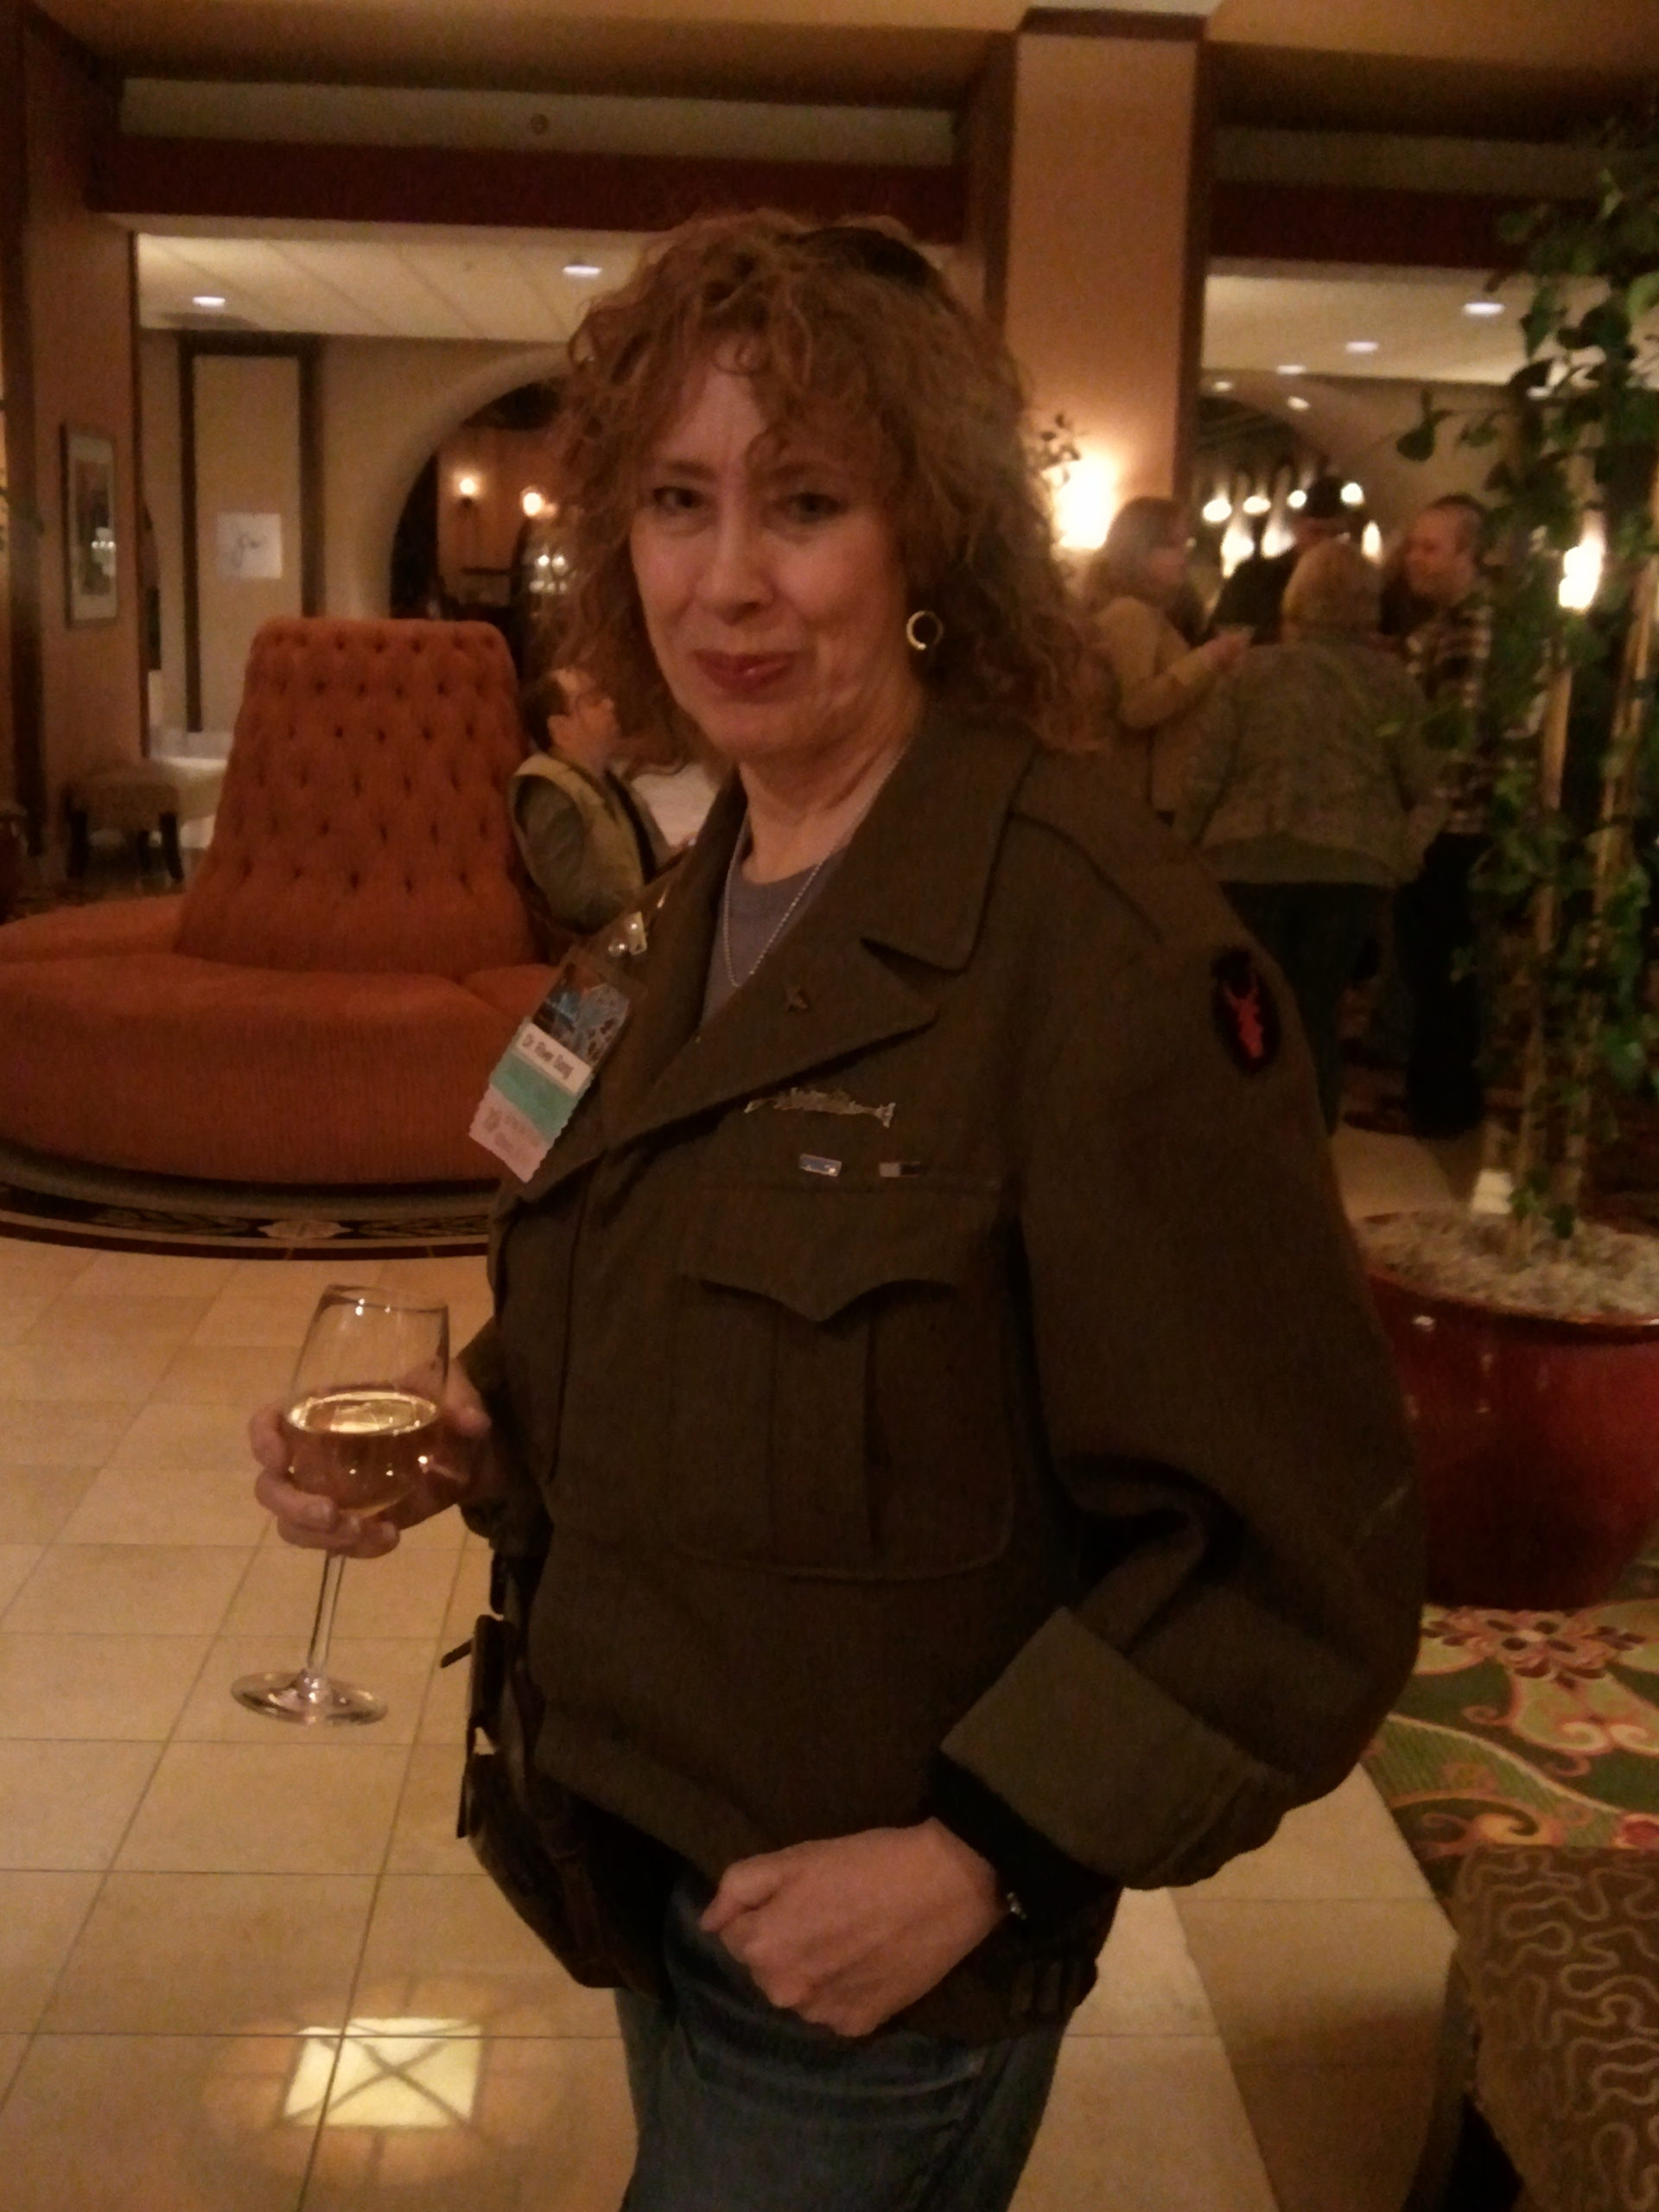 River Song drinks